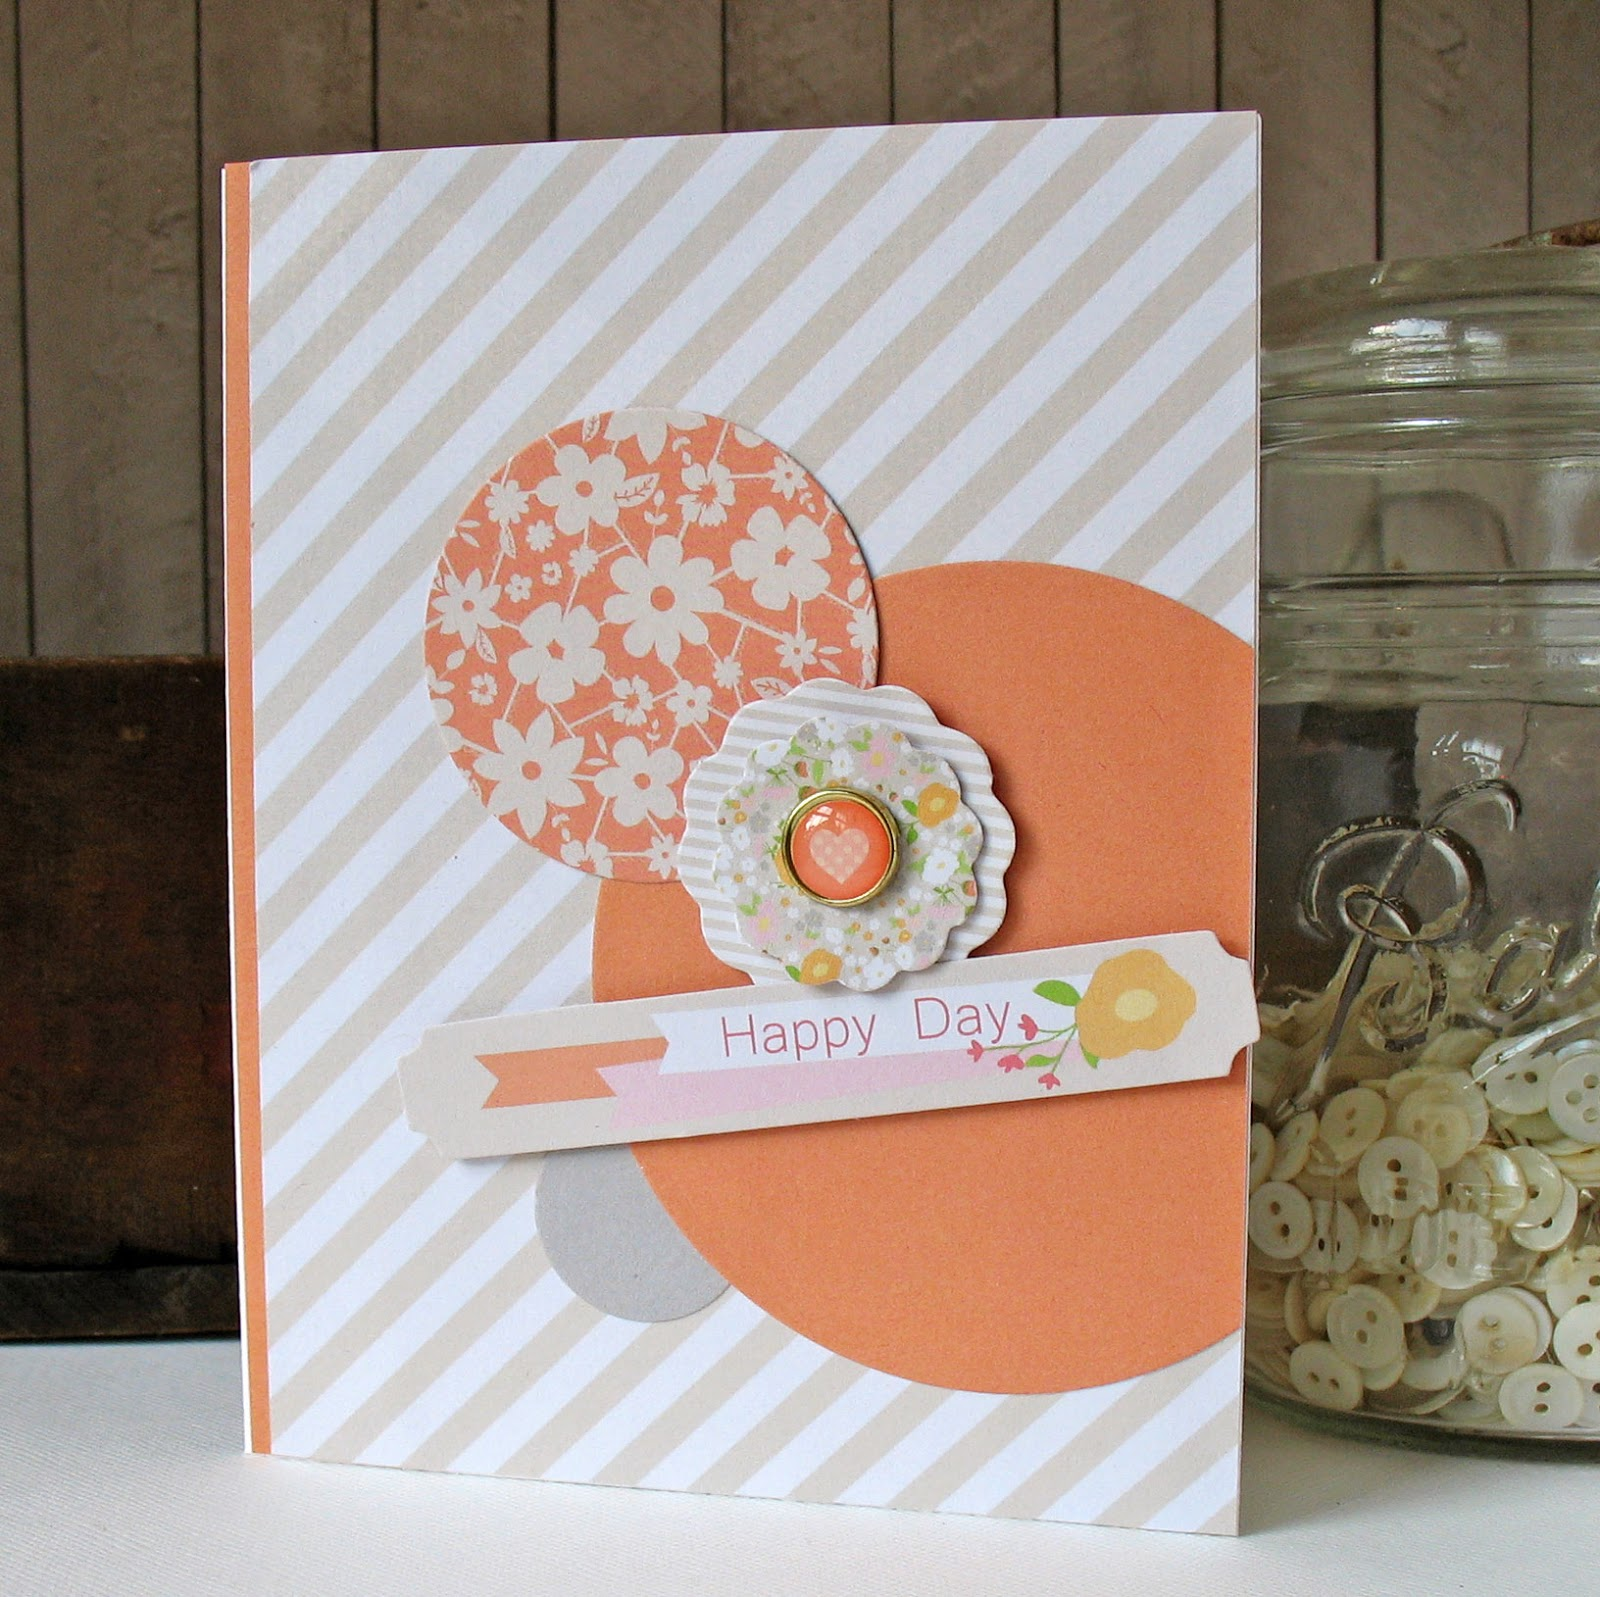 Kathy Martin Chickaniddy Crafts August Pinterest Card